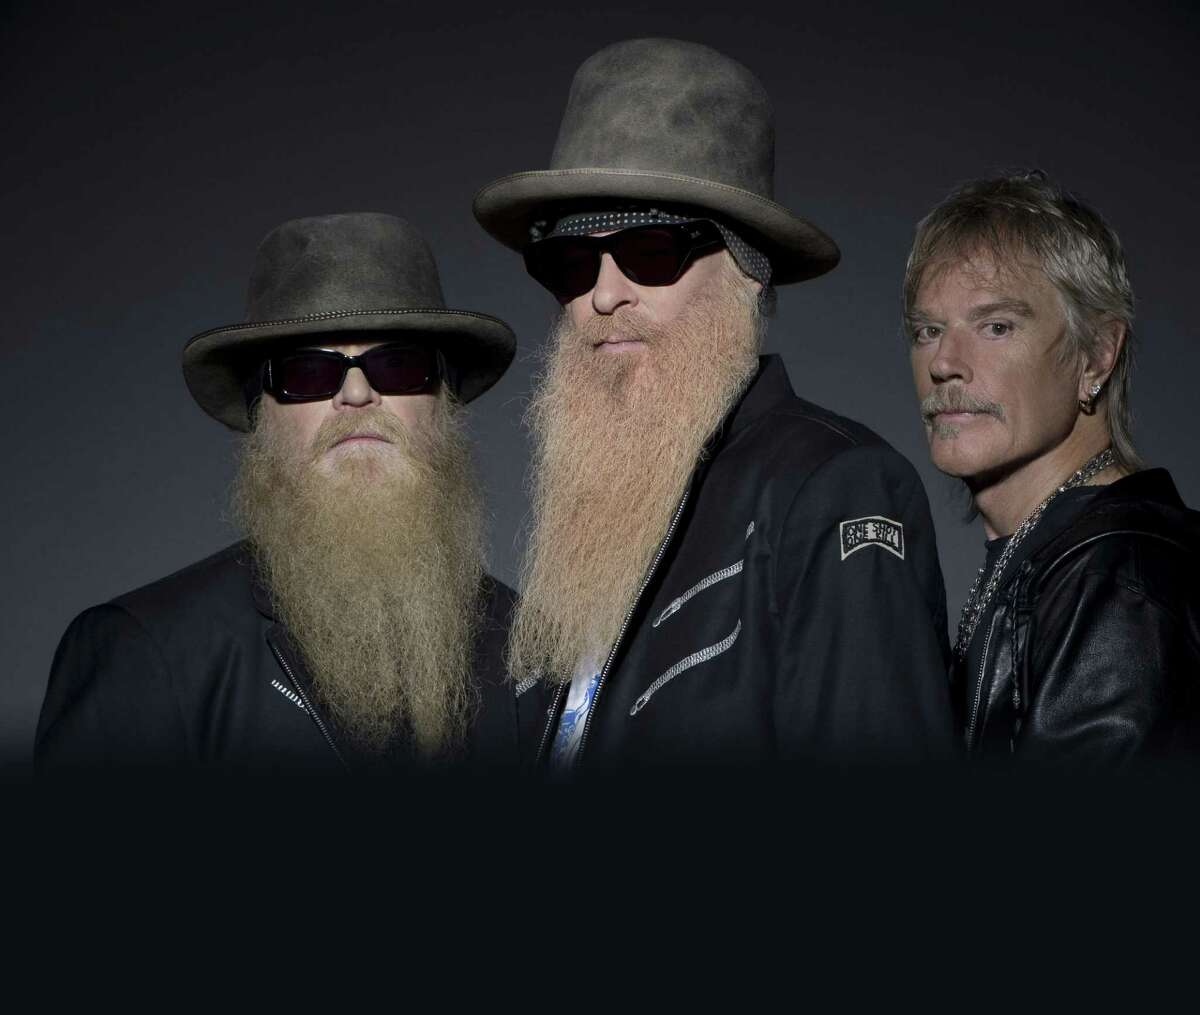 ZZ Top, whose members include Billy Gibbons, from left, Dusty Hill and Frank Beard, will perform the blues Saturday in The Woodlands.